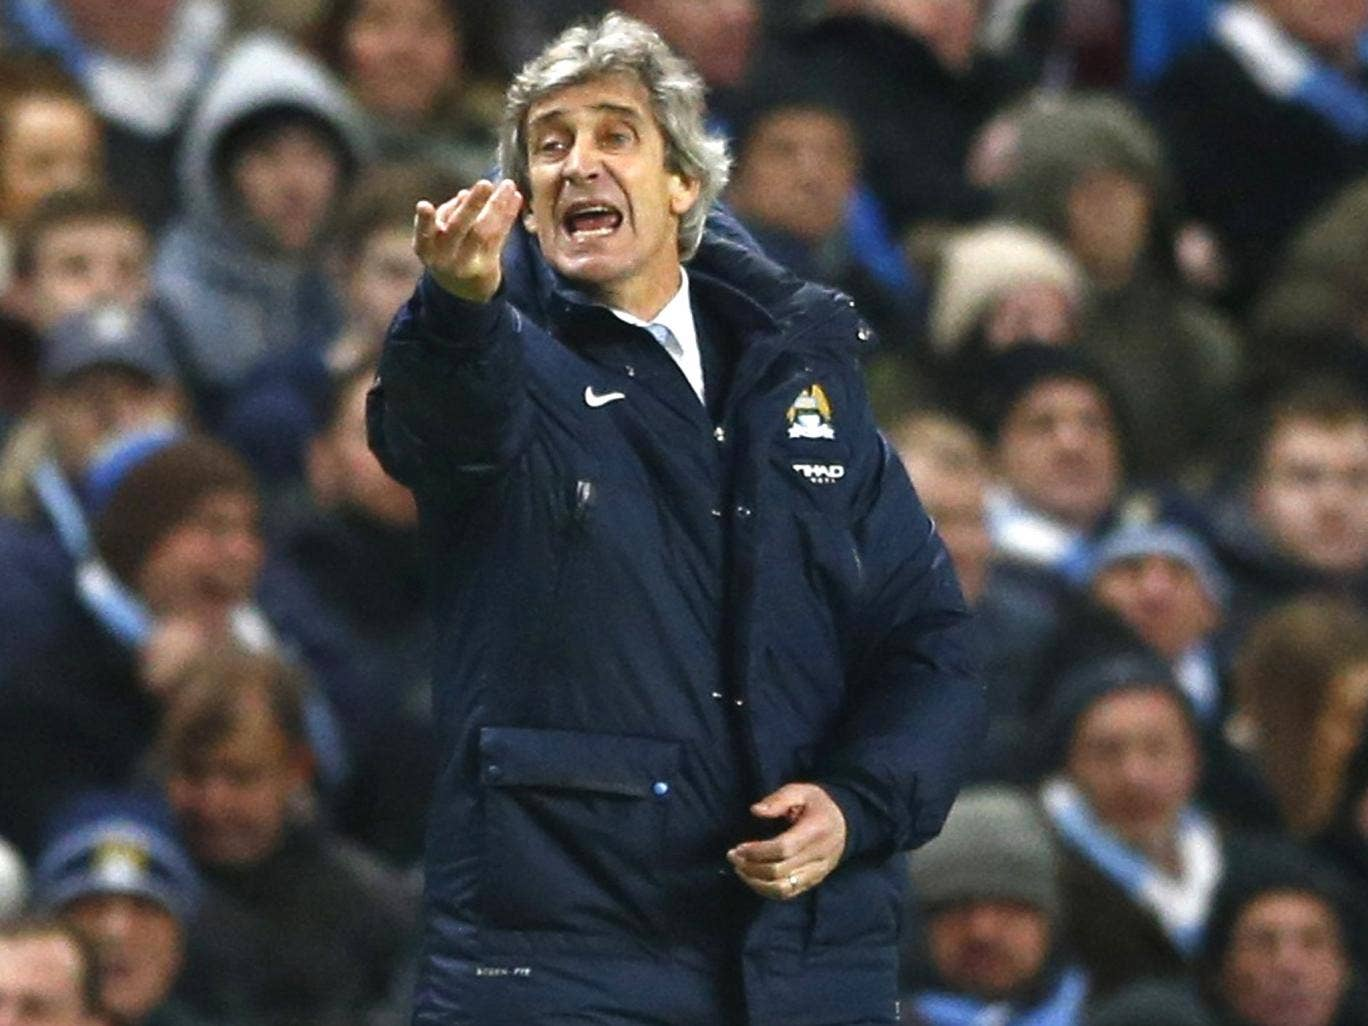 Manuel Pellegrini wants his team to play with a free spirit